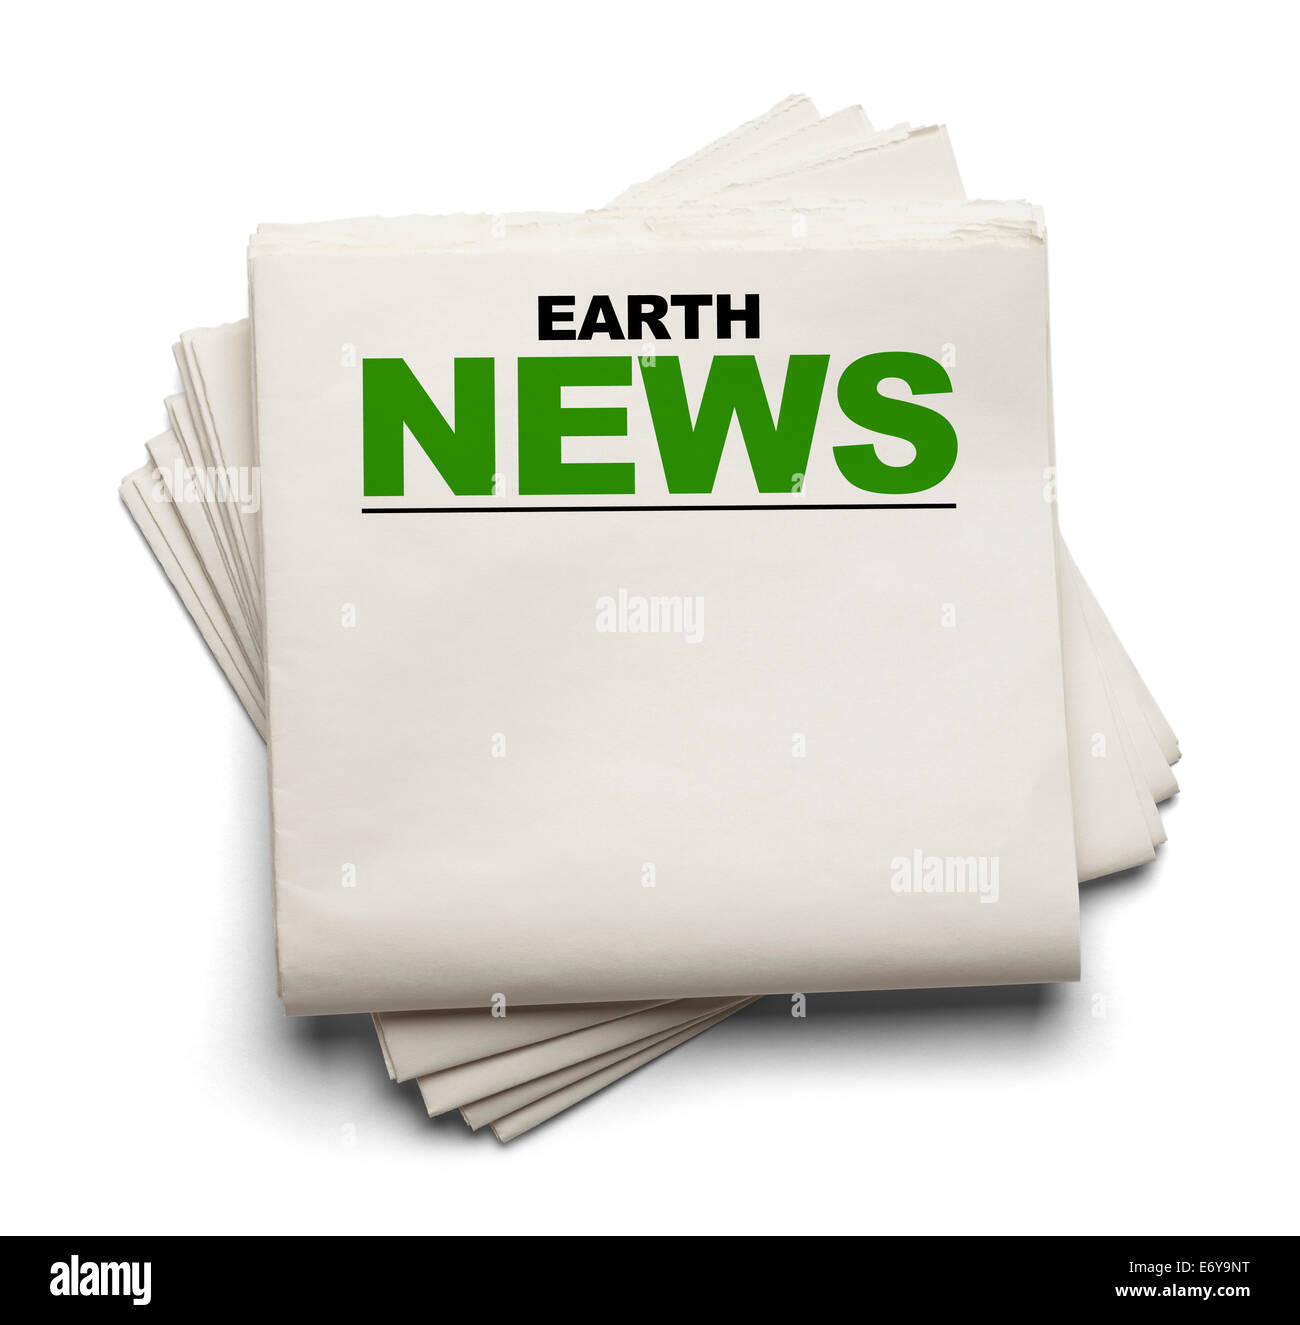 Blank Newspaper With Earth News At Top Isolated On White Background